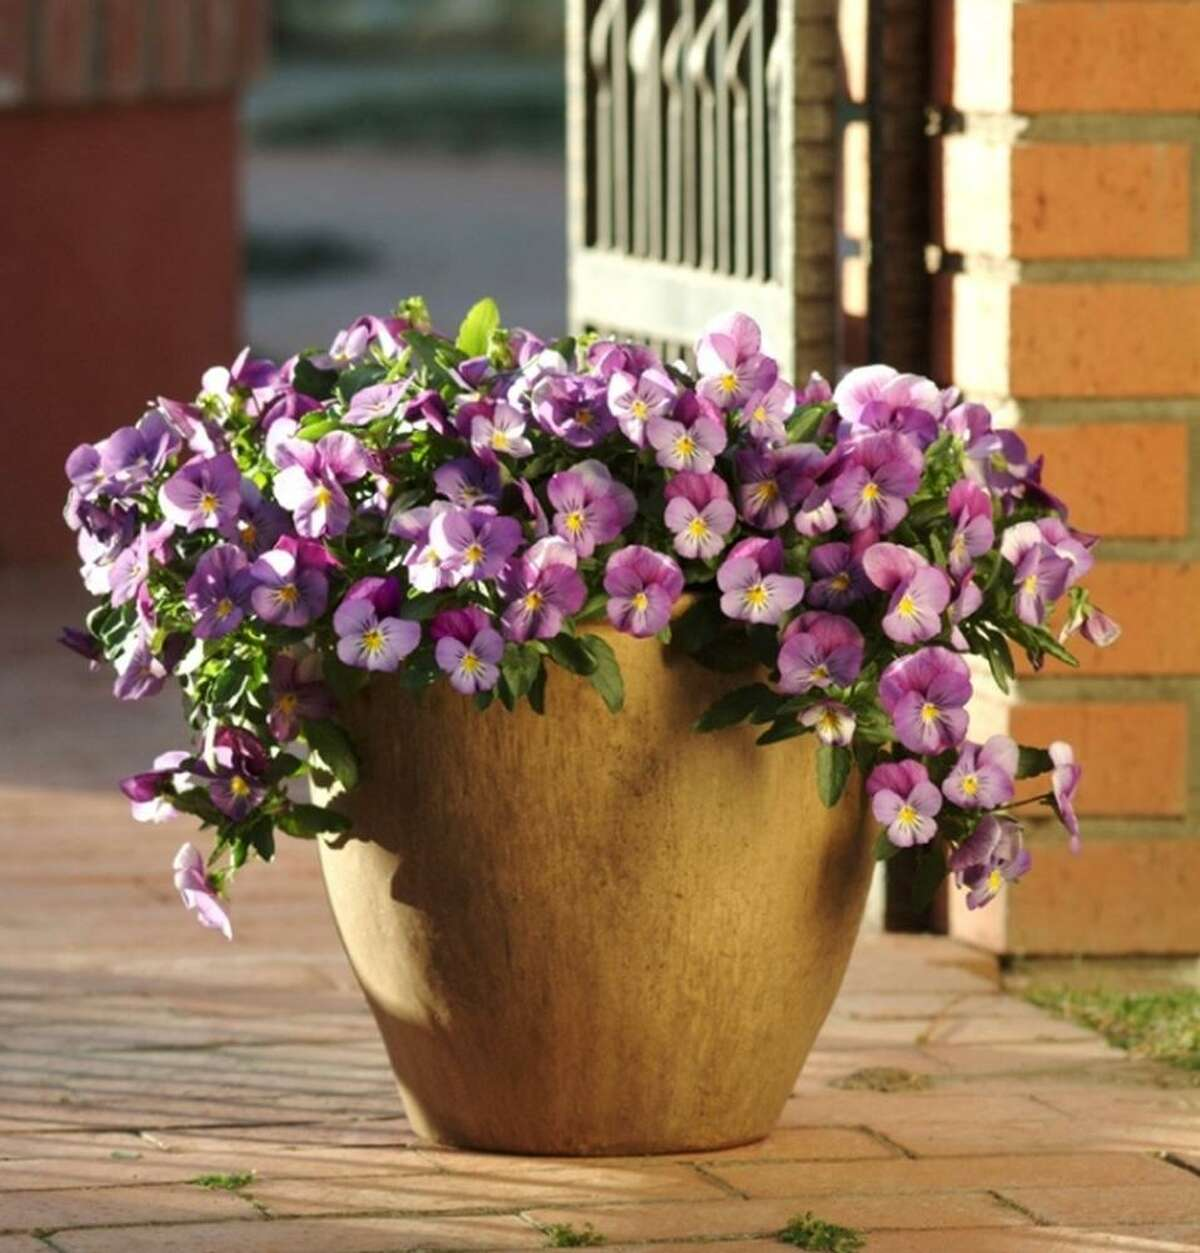 Lavendar Plentifall pansy looks great in containers.